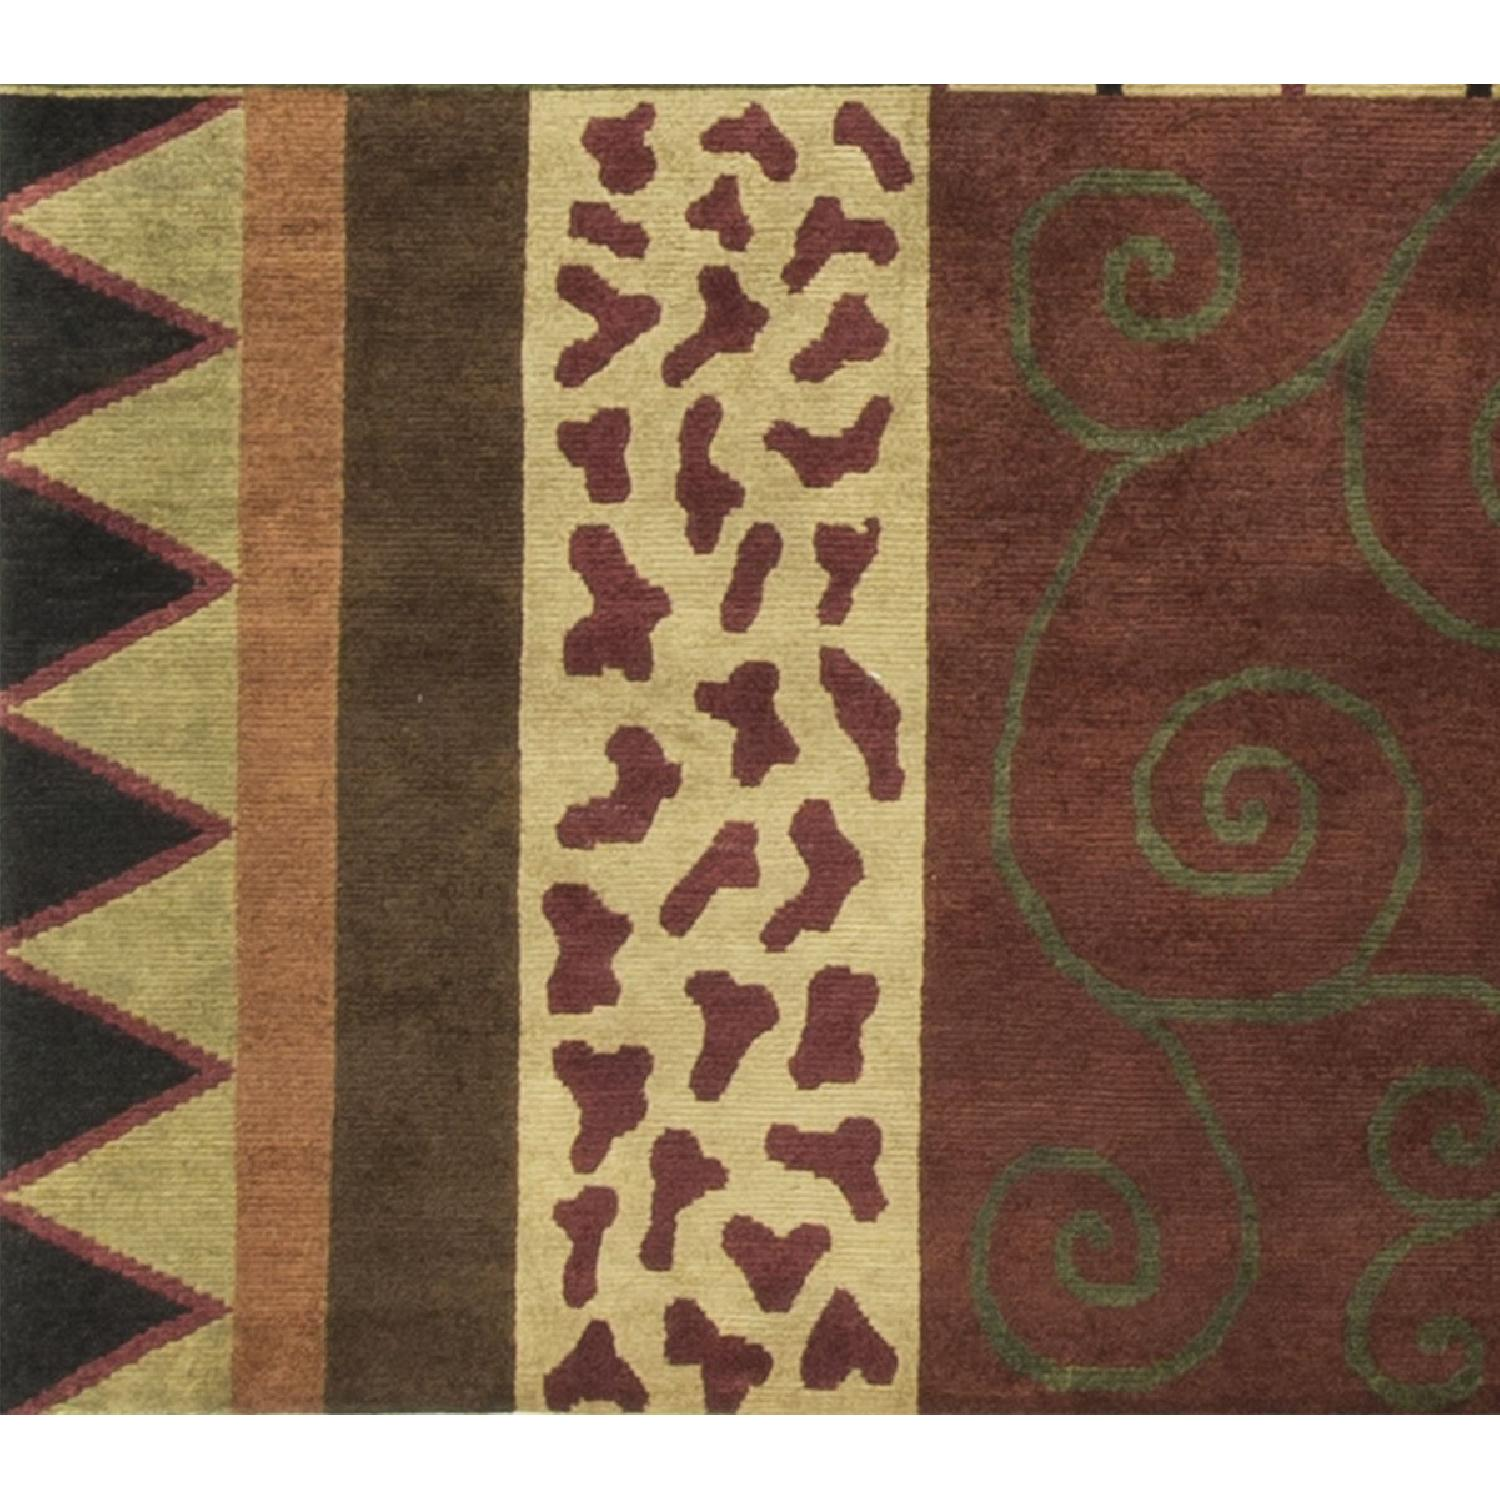 Modern Contemporary Hand Knotted Wool Rug in Beige/Red/Black/Green - image-3